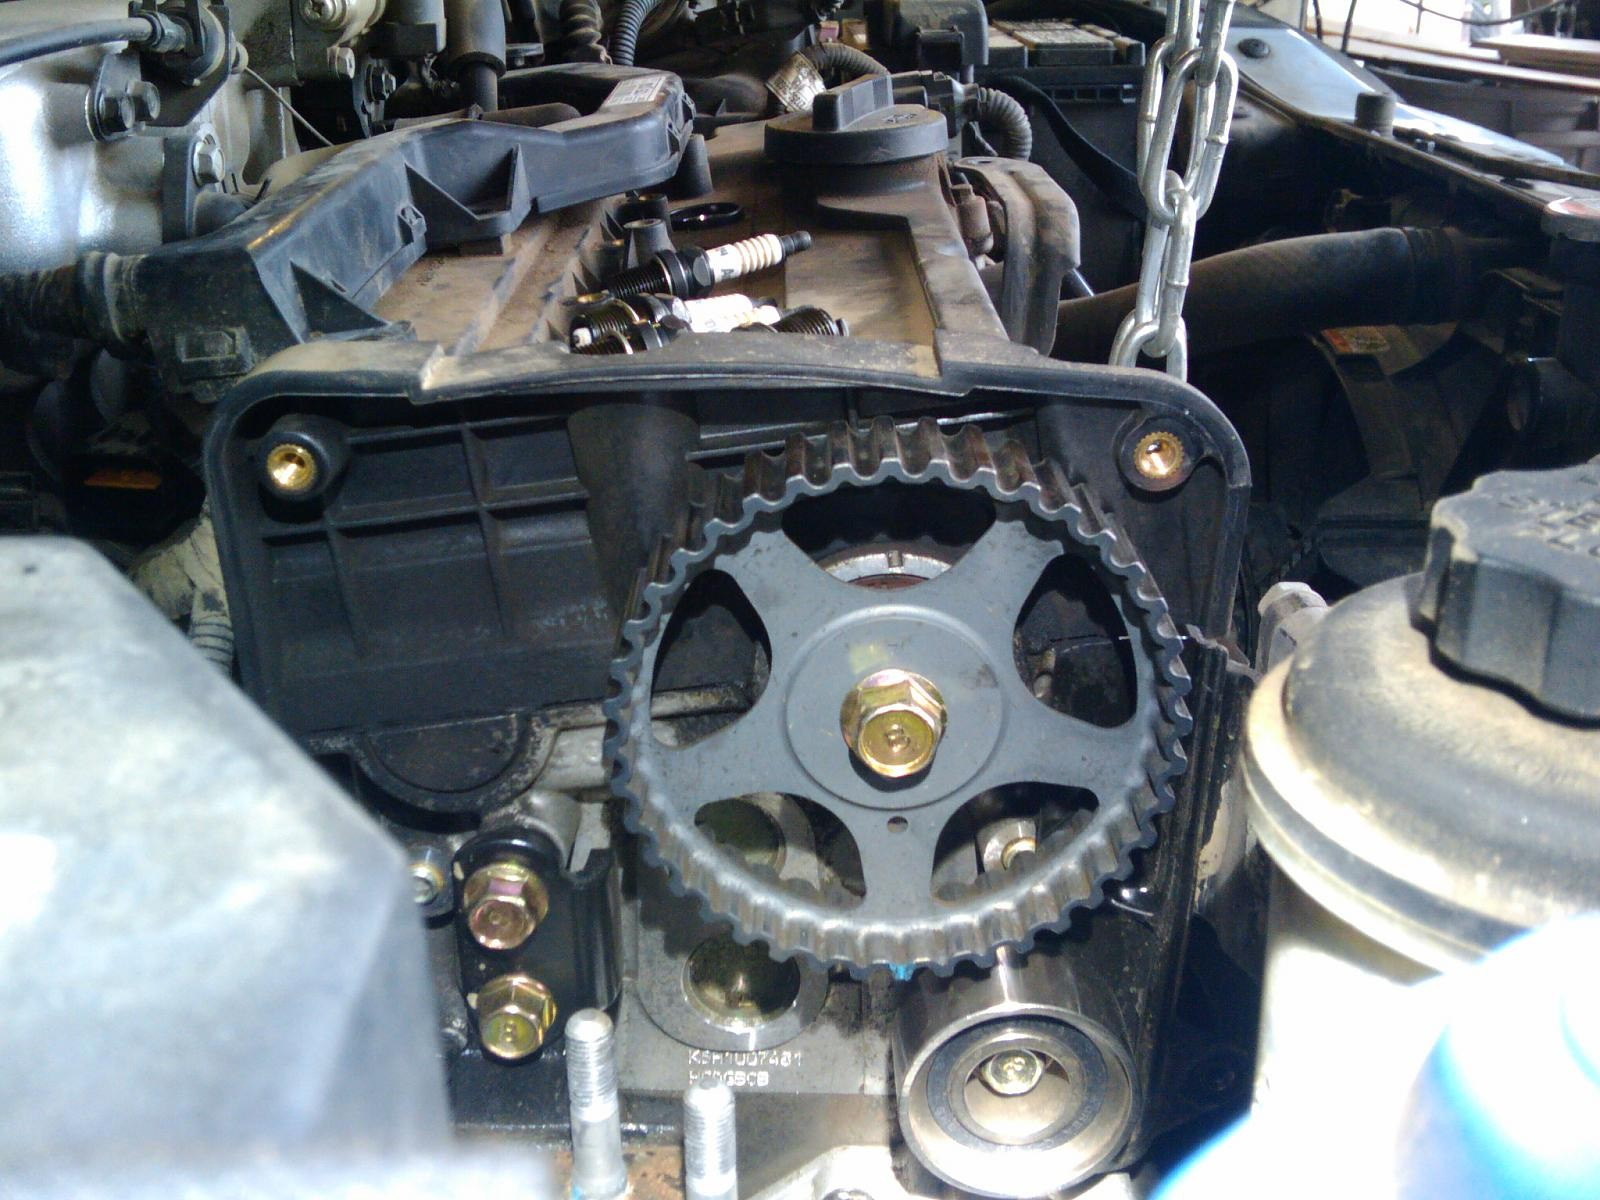 2001 Kia Rio Engine Diagram Timing Belt Replacement Optima 2 7l Setting Diagrams Diy Warning Interference Service Interval Of